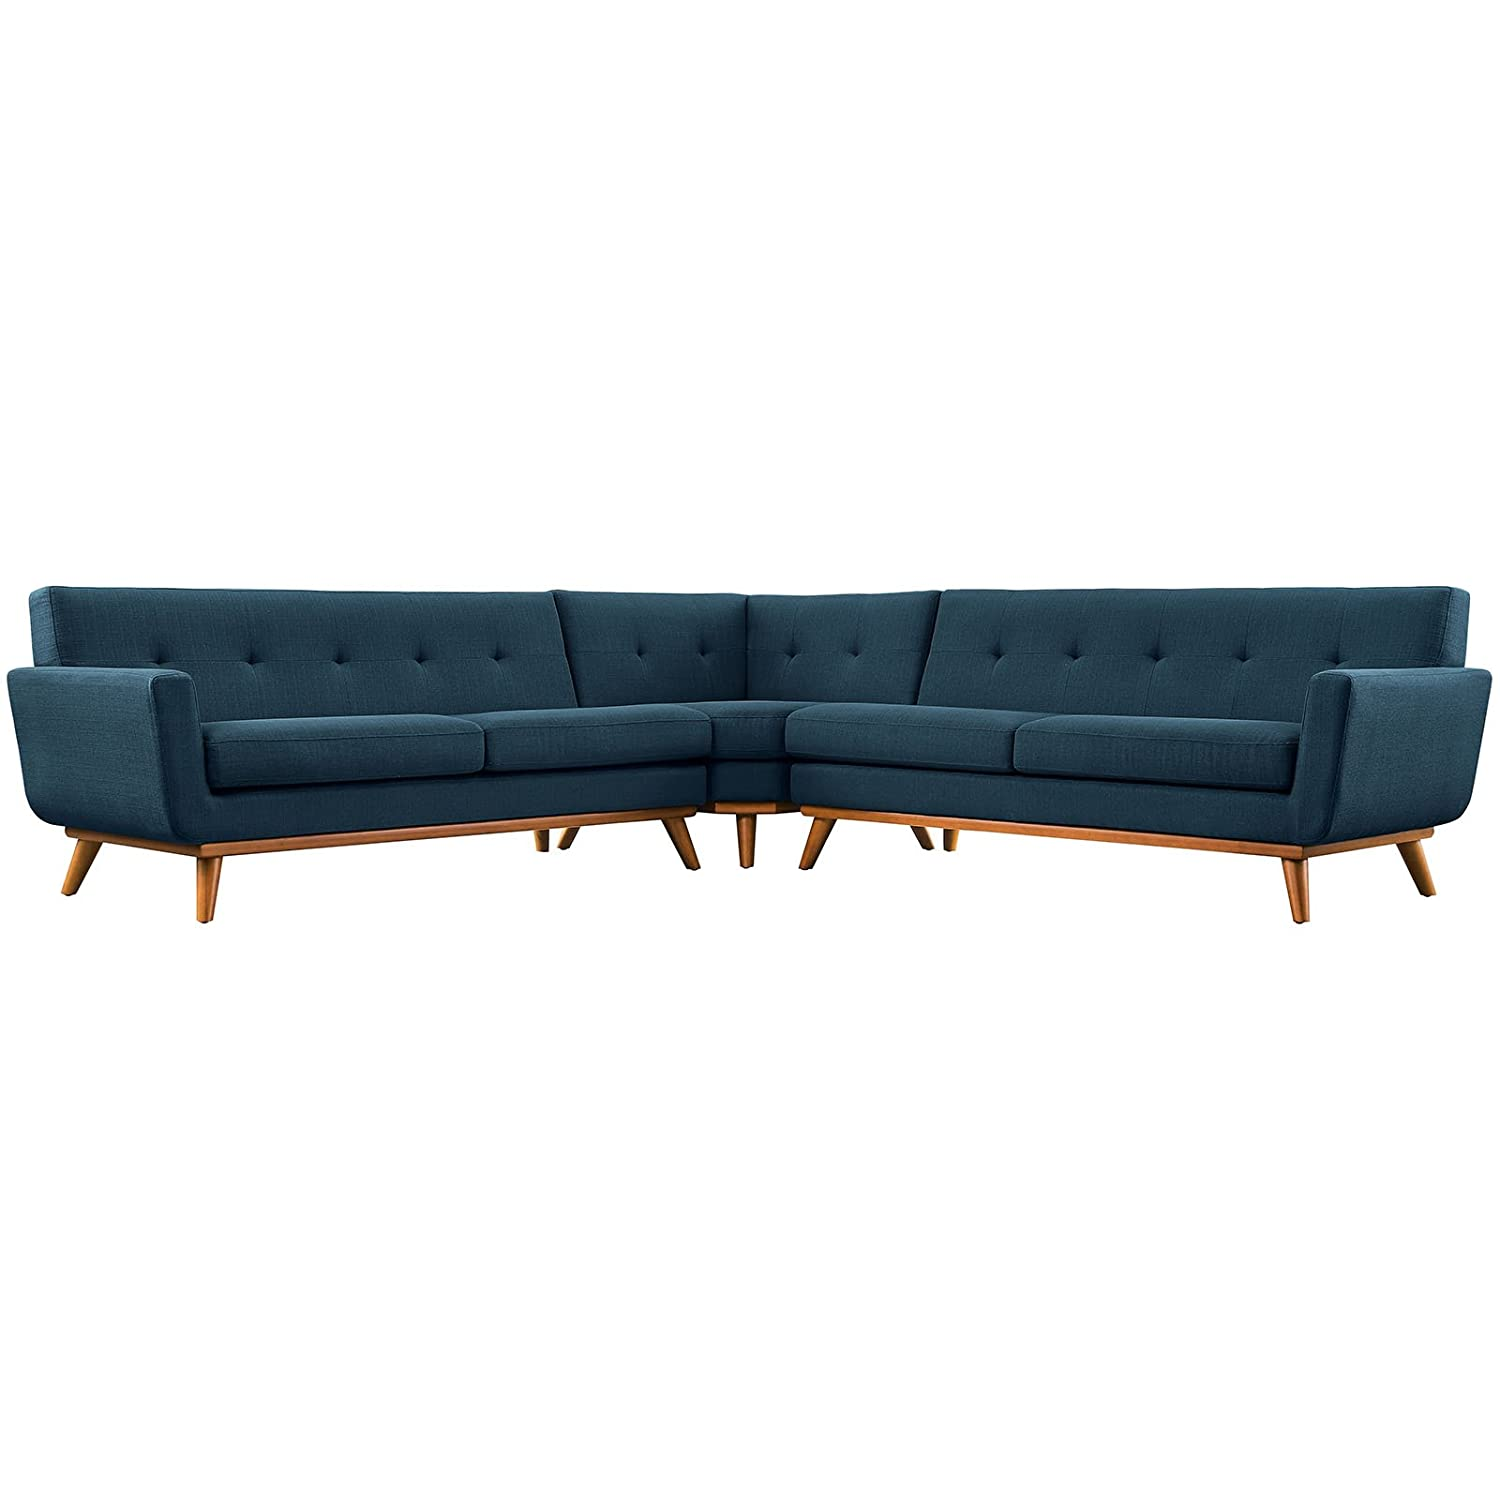 Modern Contemporary L-Shaped Sectional Sofa - Navy - Fabric